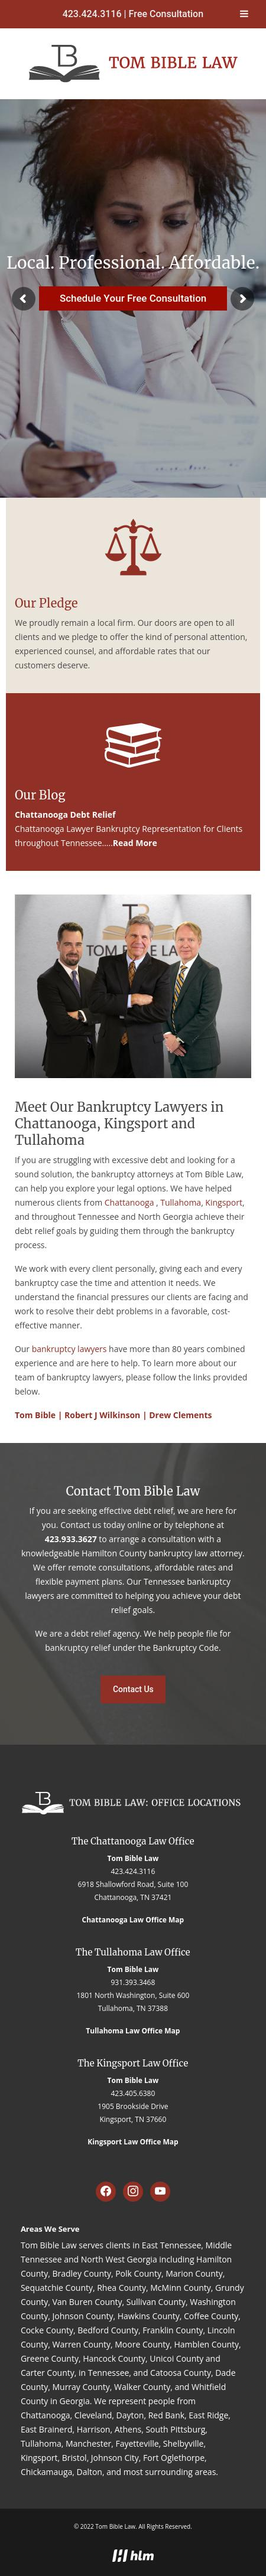 Law Office of W. Thomas Bible, Jr. - Chattanooga TN Lawyers